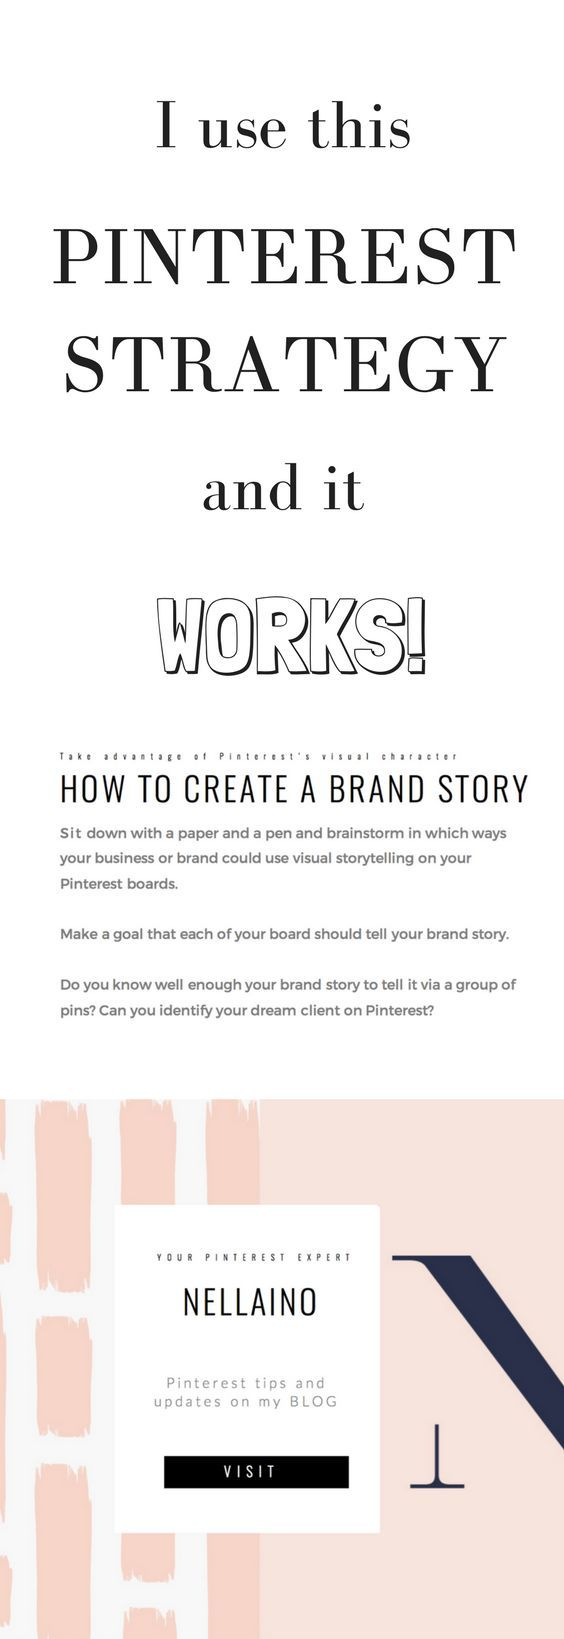 Pinterest marketing strategy that will give you concrete steps how to lay out a great foundation and start marketing your brand and business on Pinterest - with a creative way. Visit www.nellaino.com for more info on Pinterest tips and services.